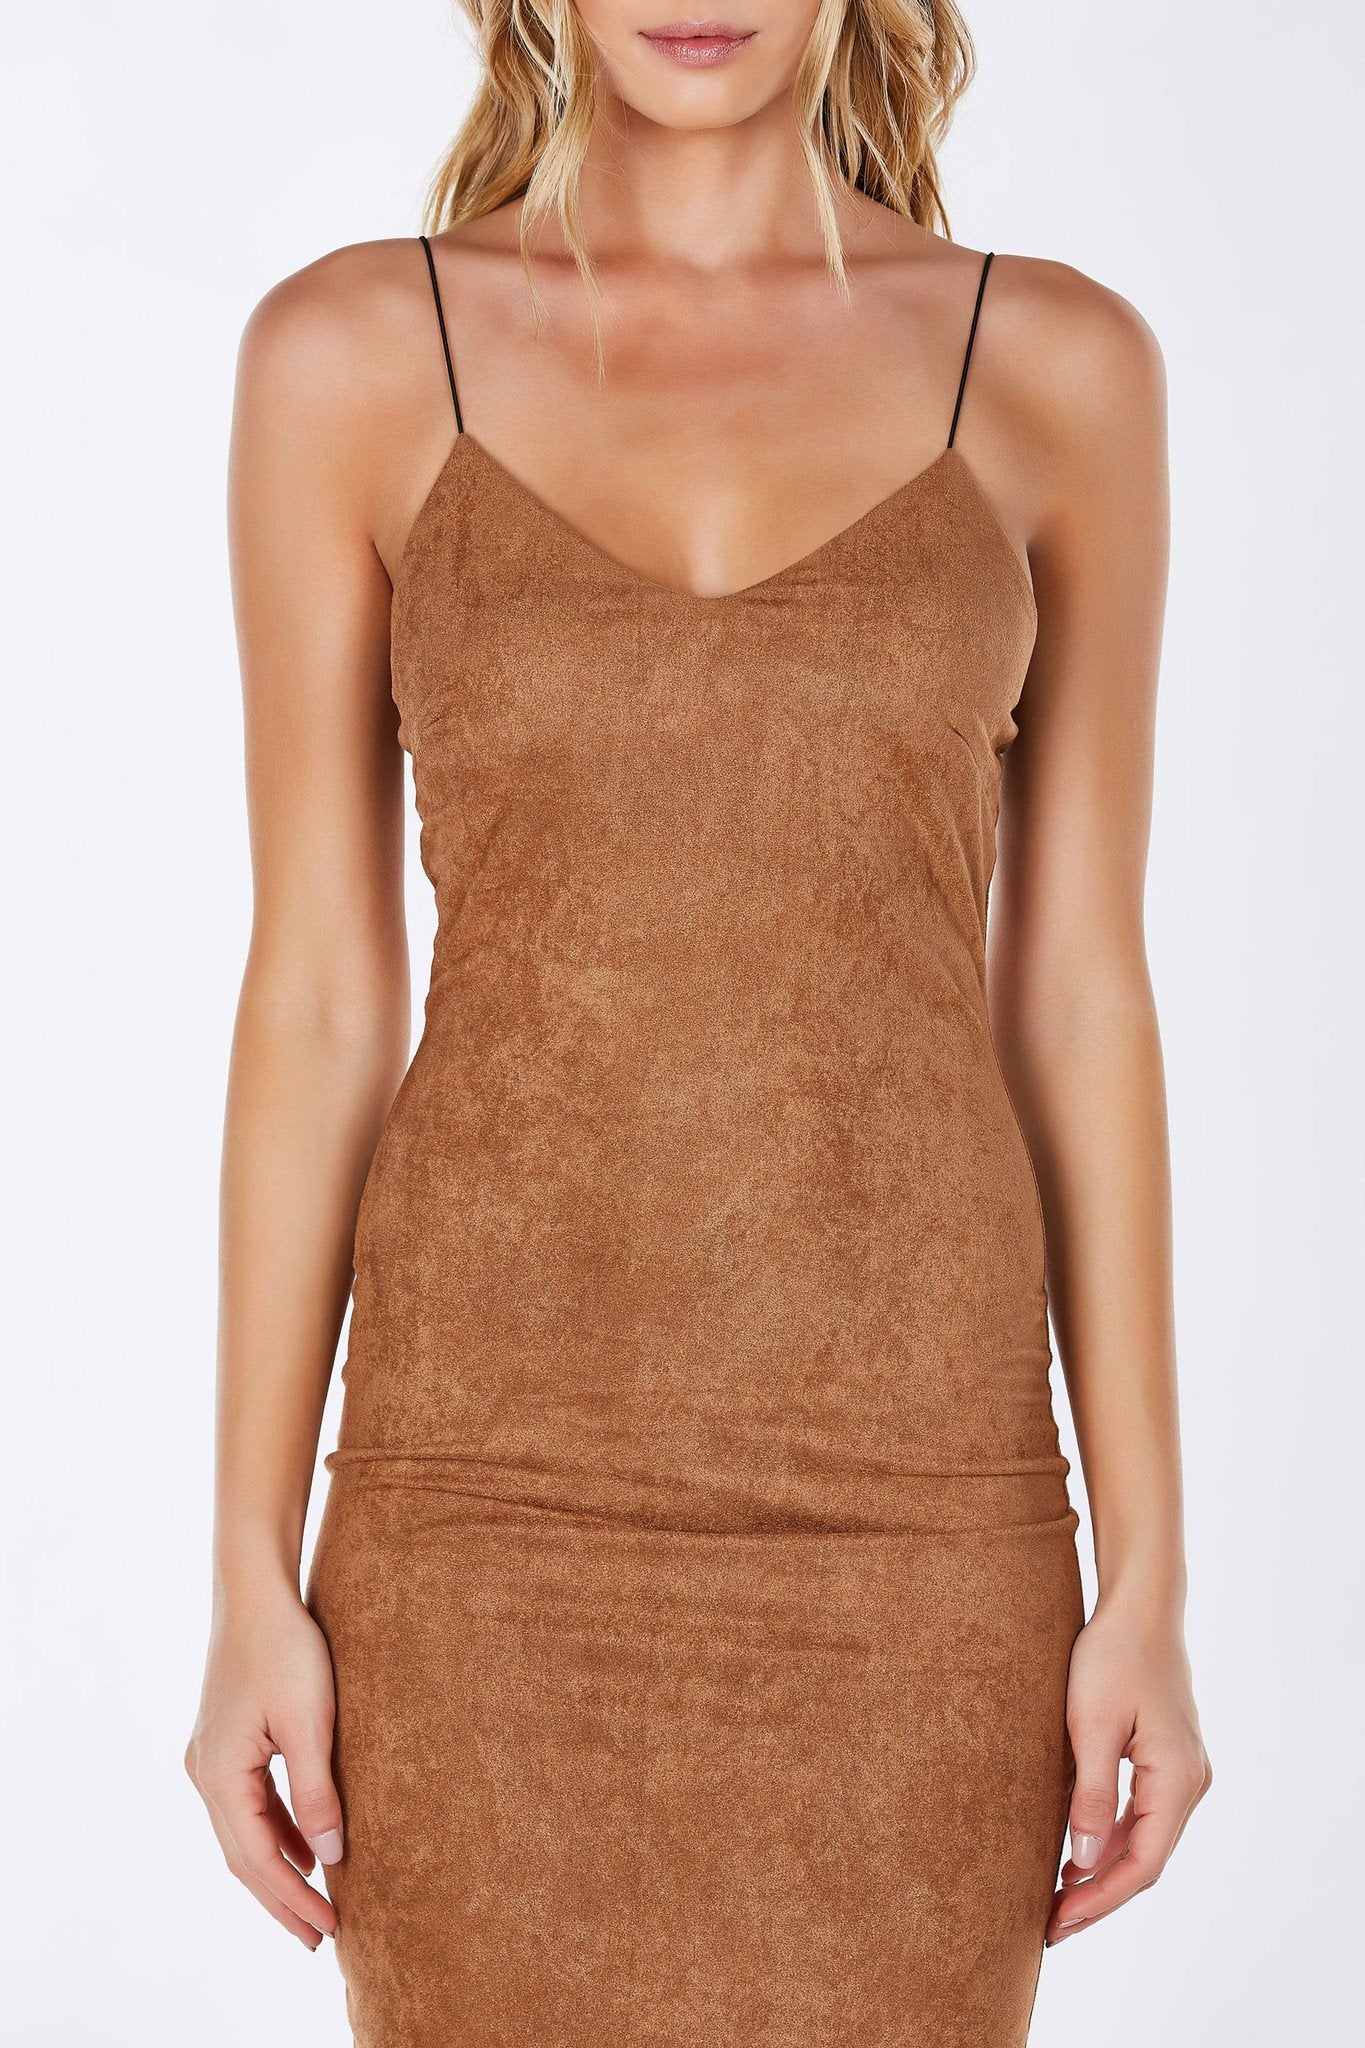 Made from a soft, faux seude and fully lined. Lingerie styled slip dress with a slinky fit. Subtle V-neckline with elastic straps.